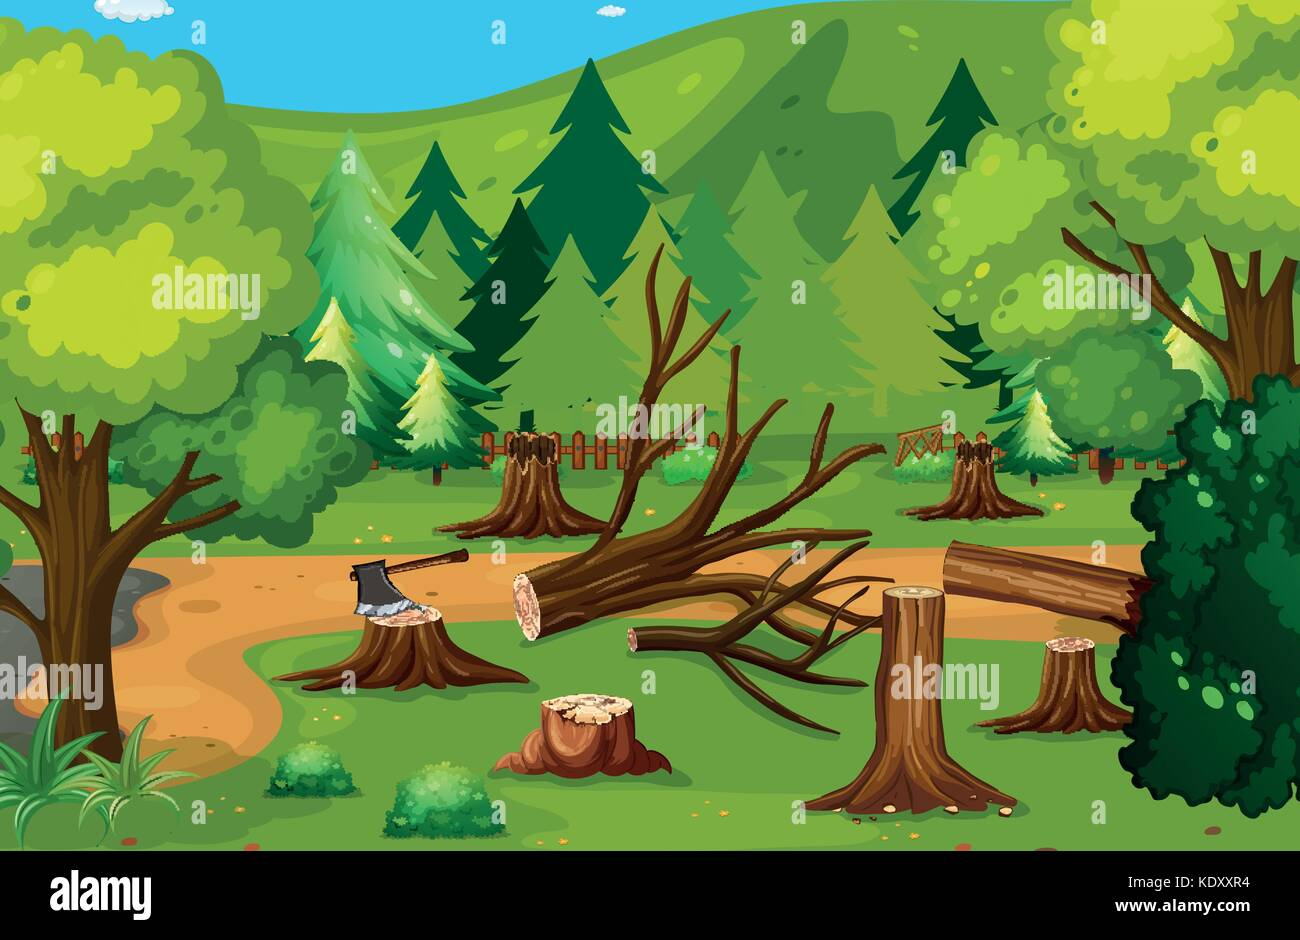 deforestation scene with chopped woods illustration stock tree stump clipart black and white tree stump clipart